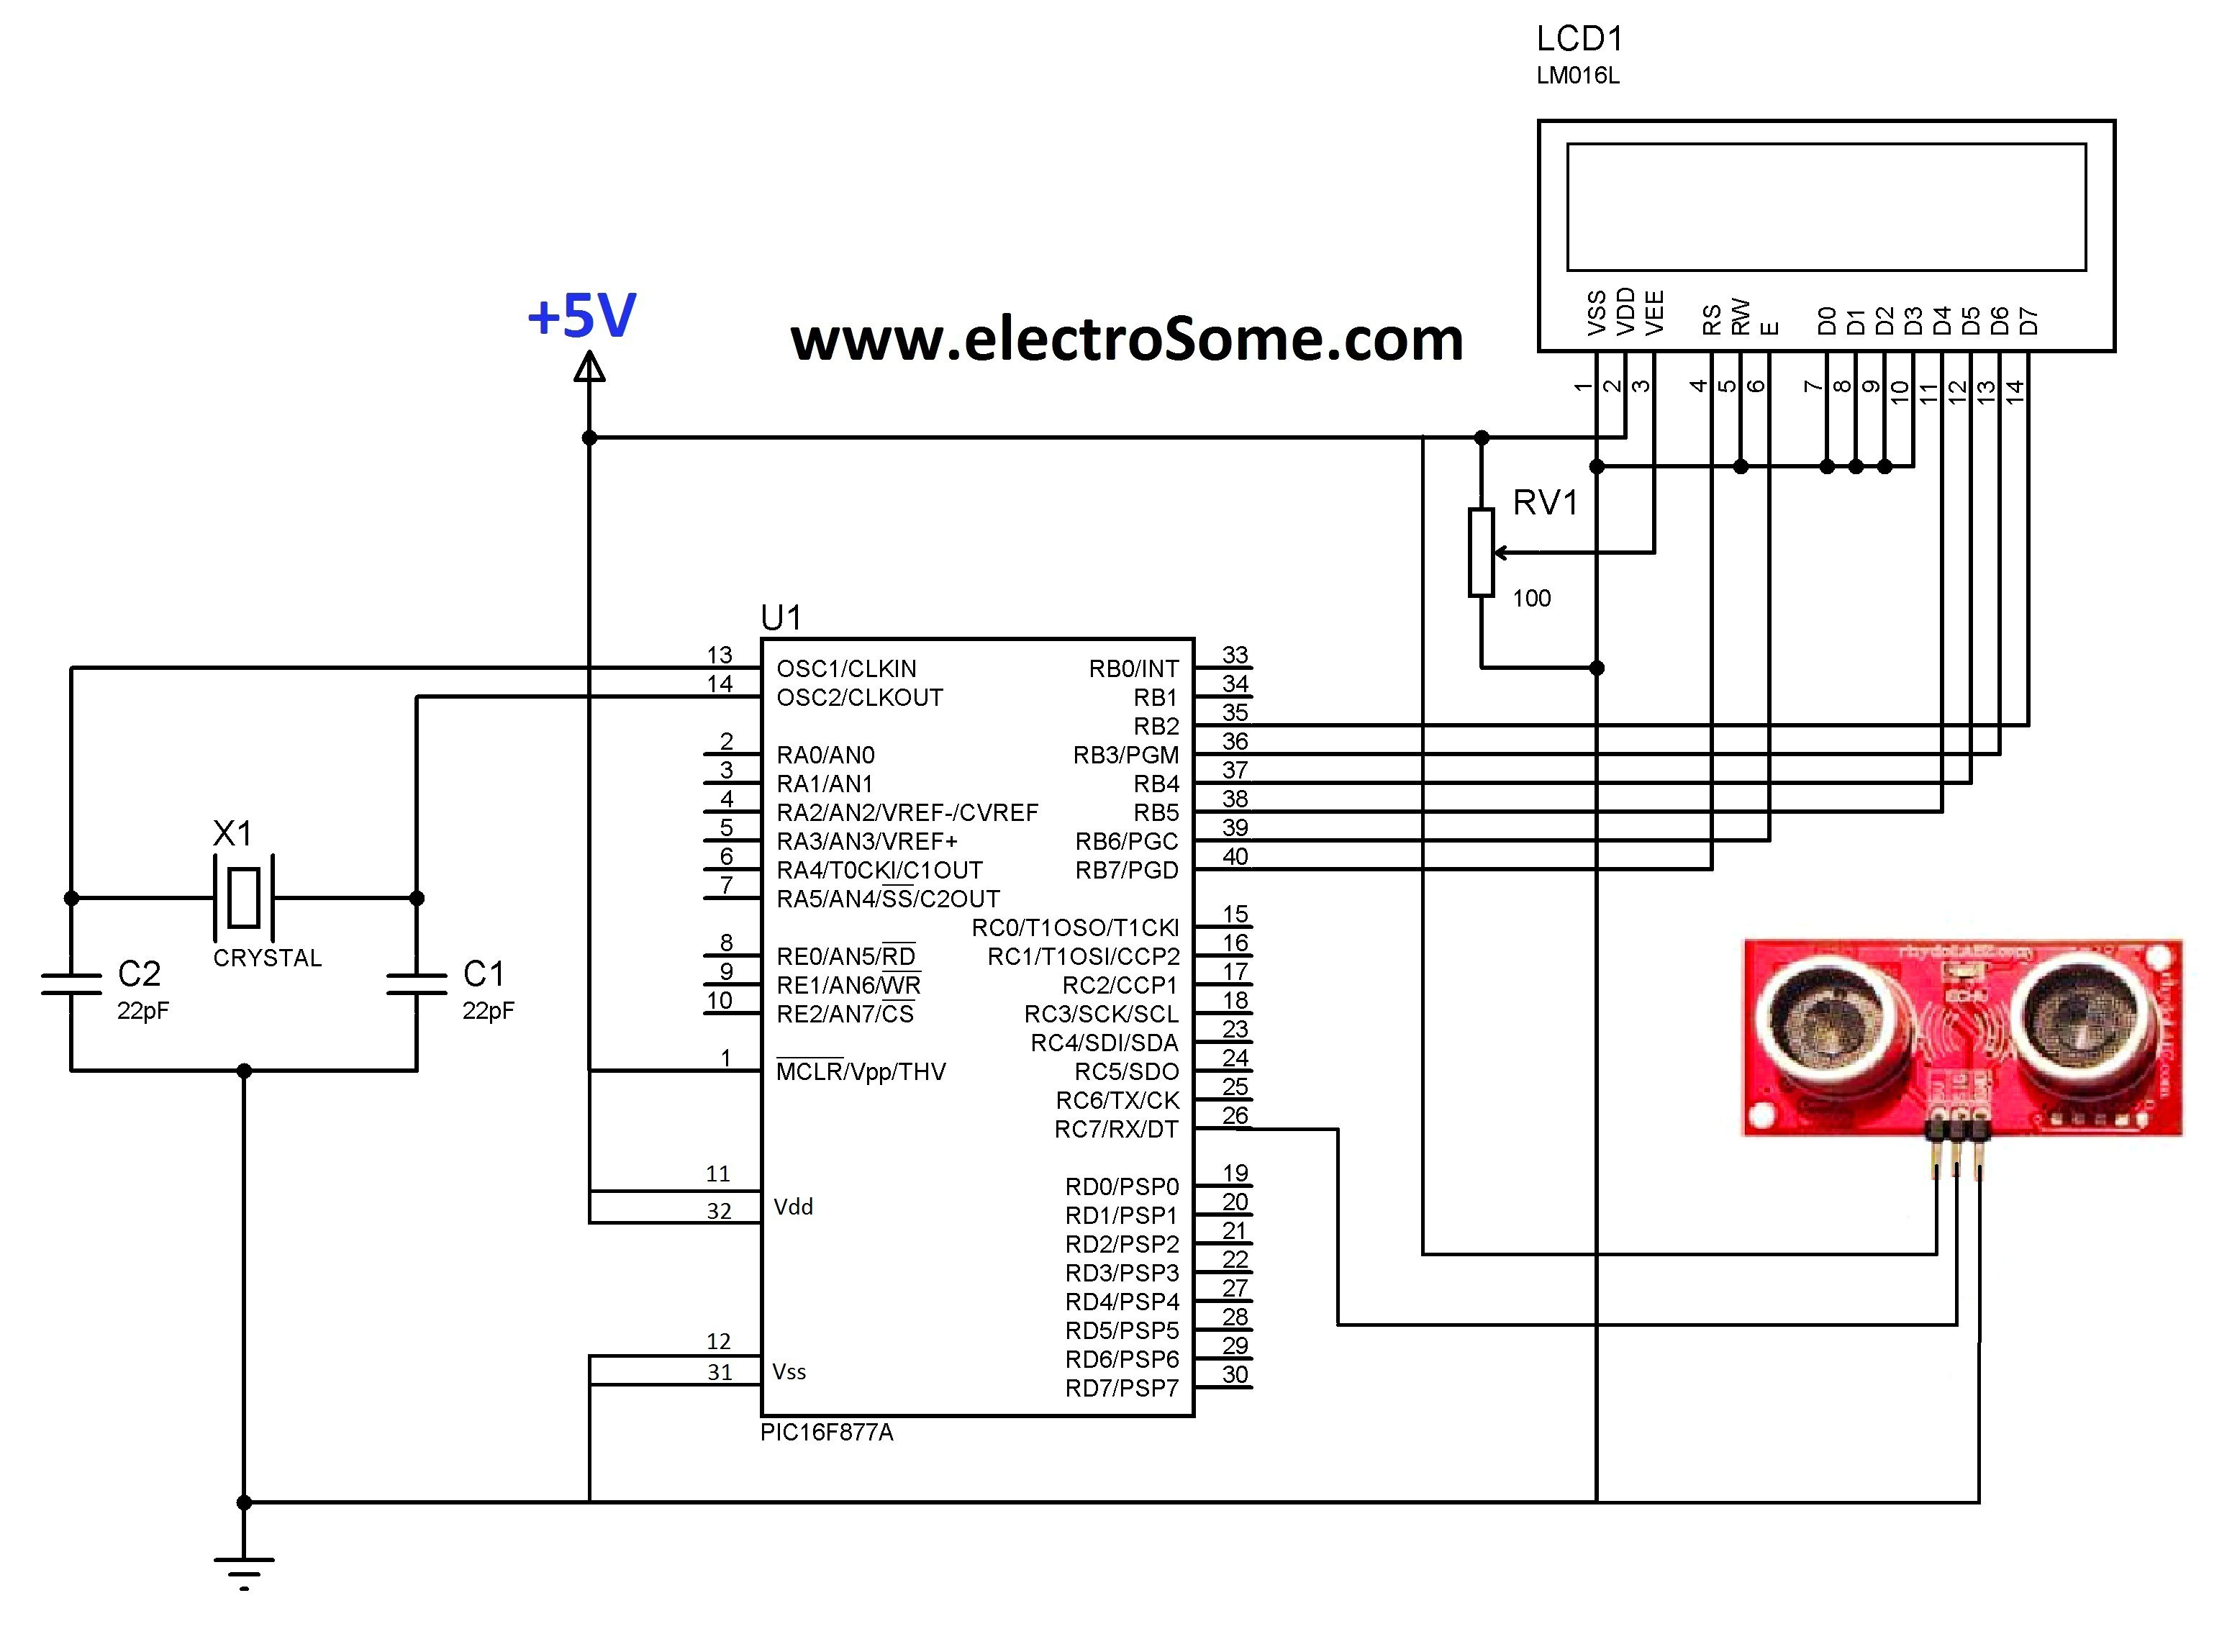 Tork Wiring Schematic for Lighting Contactor and Photocell F62dca3 tork Lighting Contactor Wiring Diagram Of Tork Wiring Schematic for Lighting Contactor and Photocell Lighting Time Clock Wiring Diagram Probleme Audi A4 Voyant